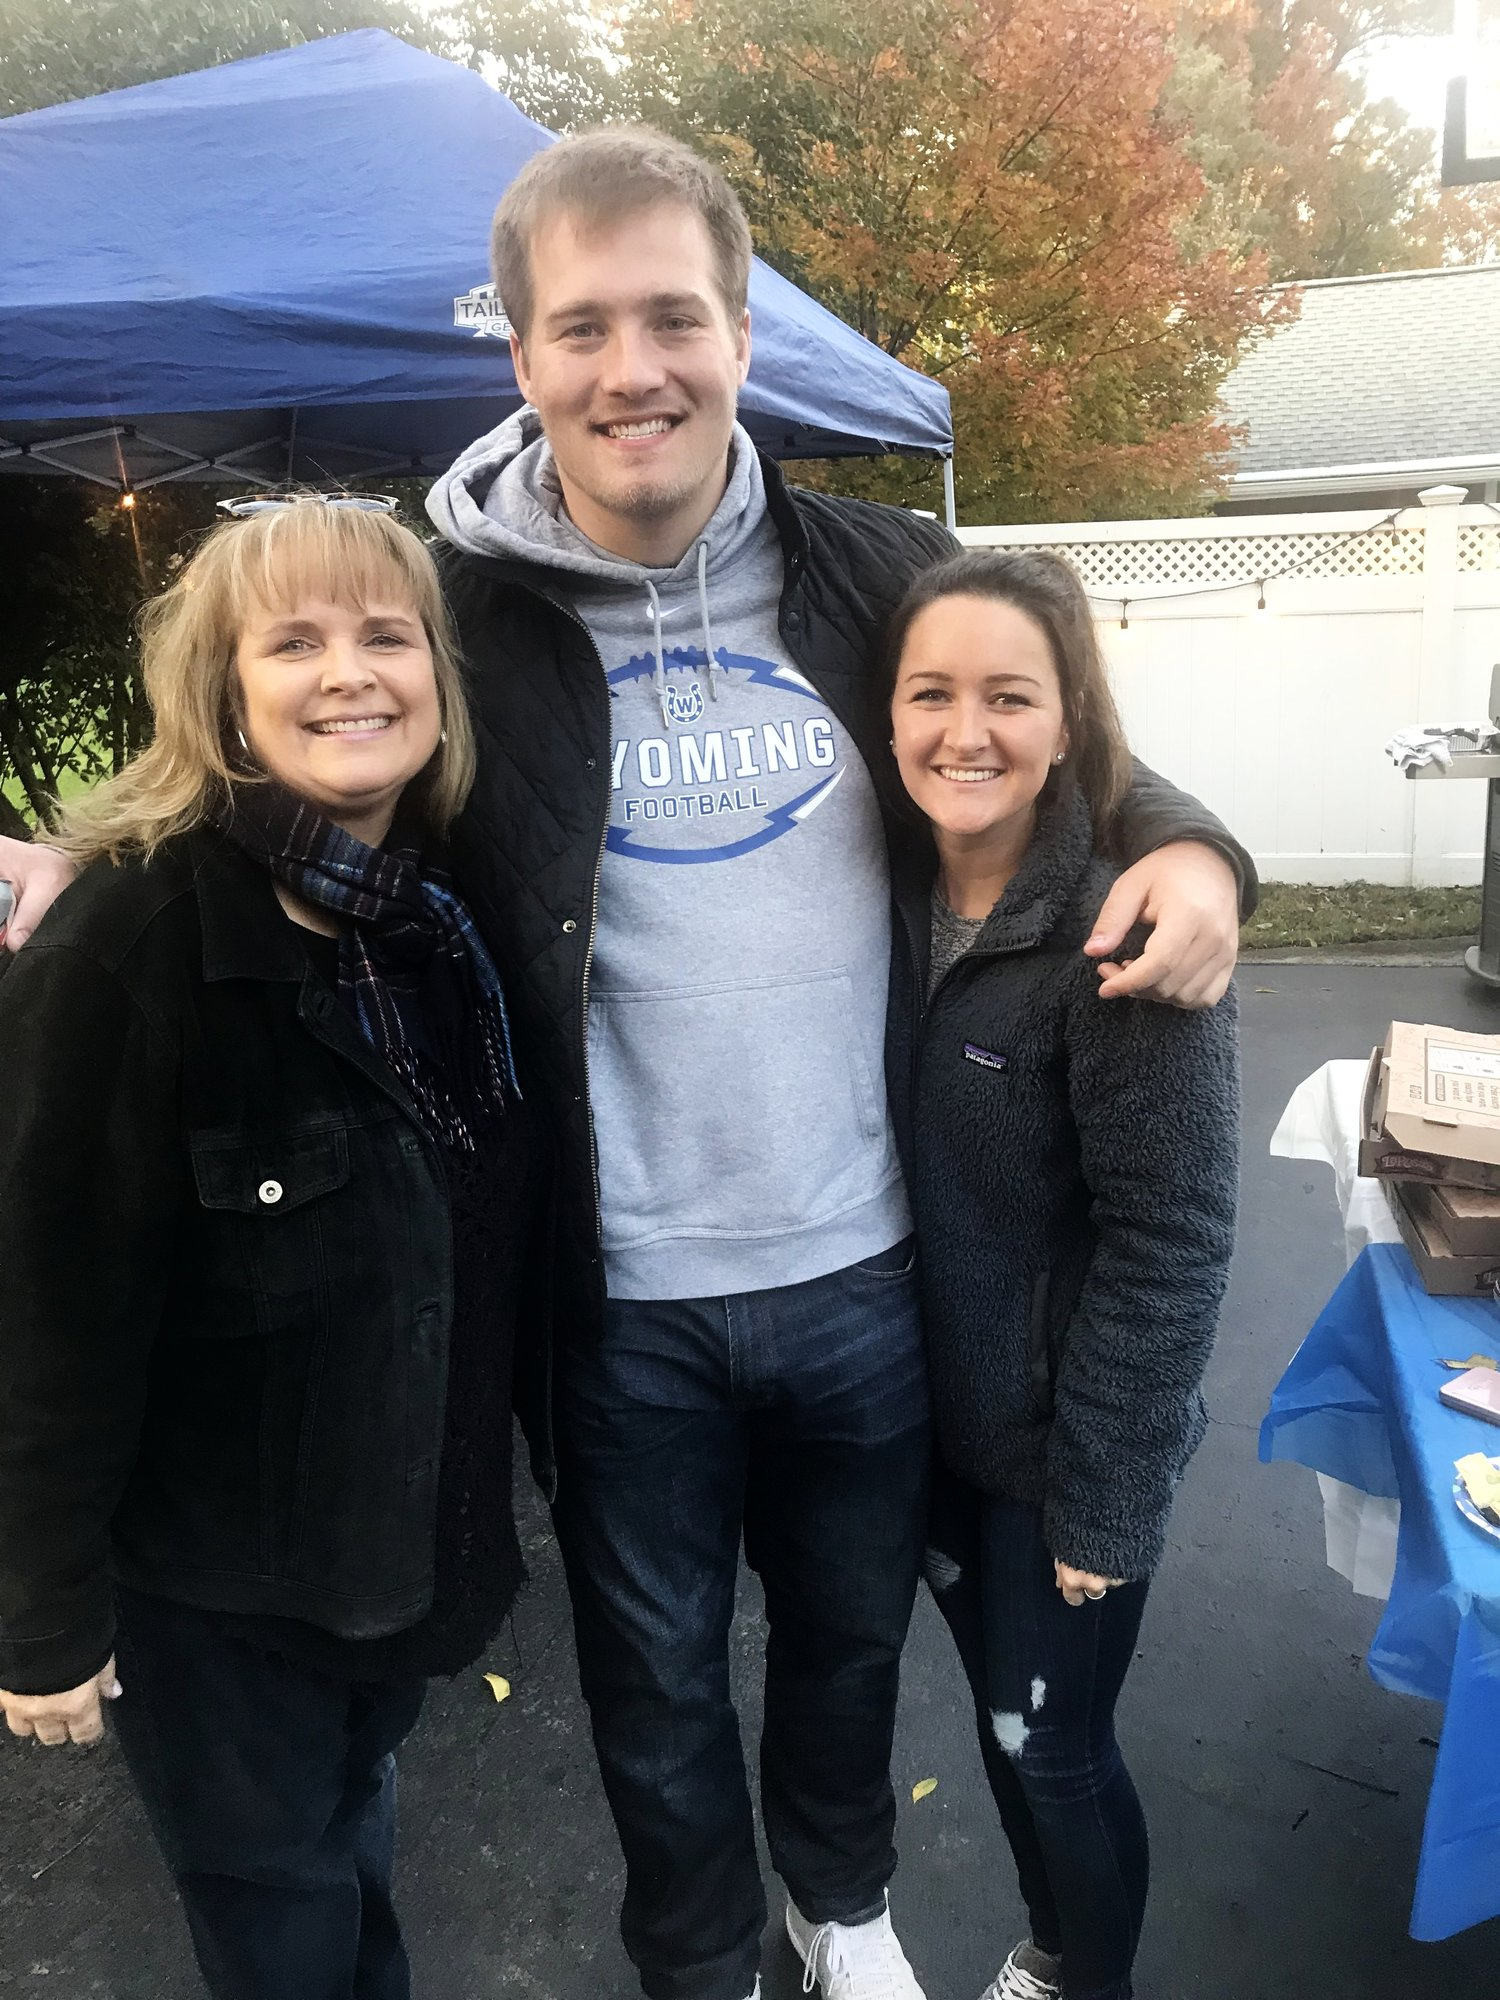 Me with my nephew, Griffin, a former Wyoming football star himself, and his girlfriend, Leah. They live in Indianapolis and came in for the tailgate and playoff game.